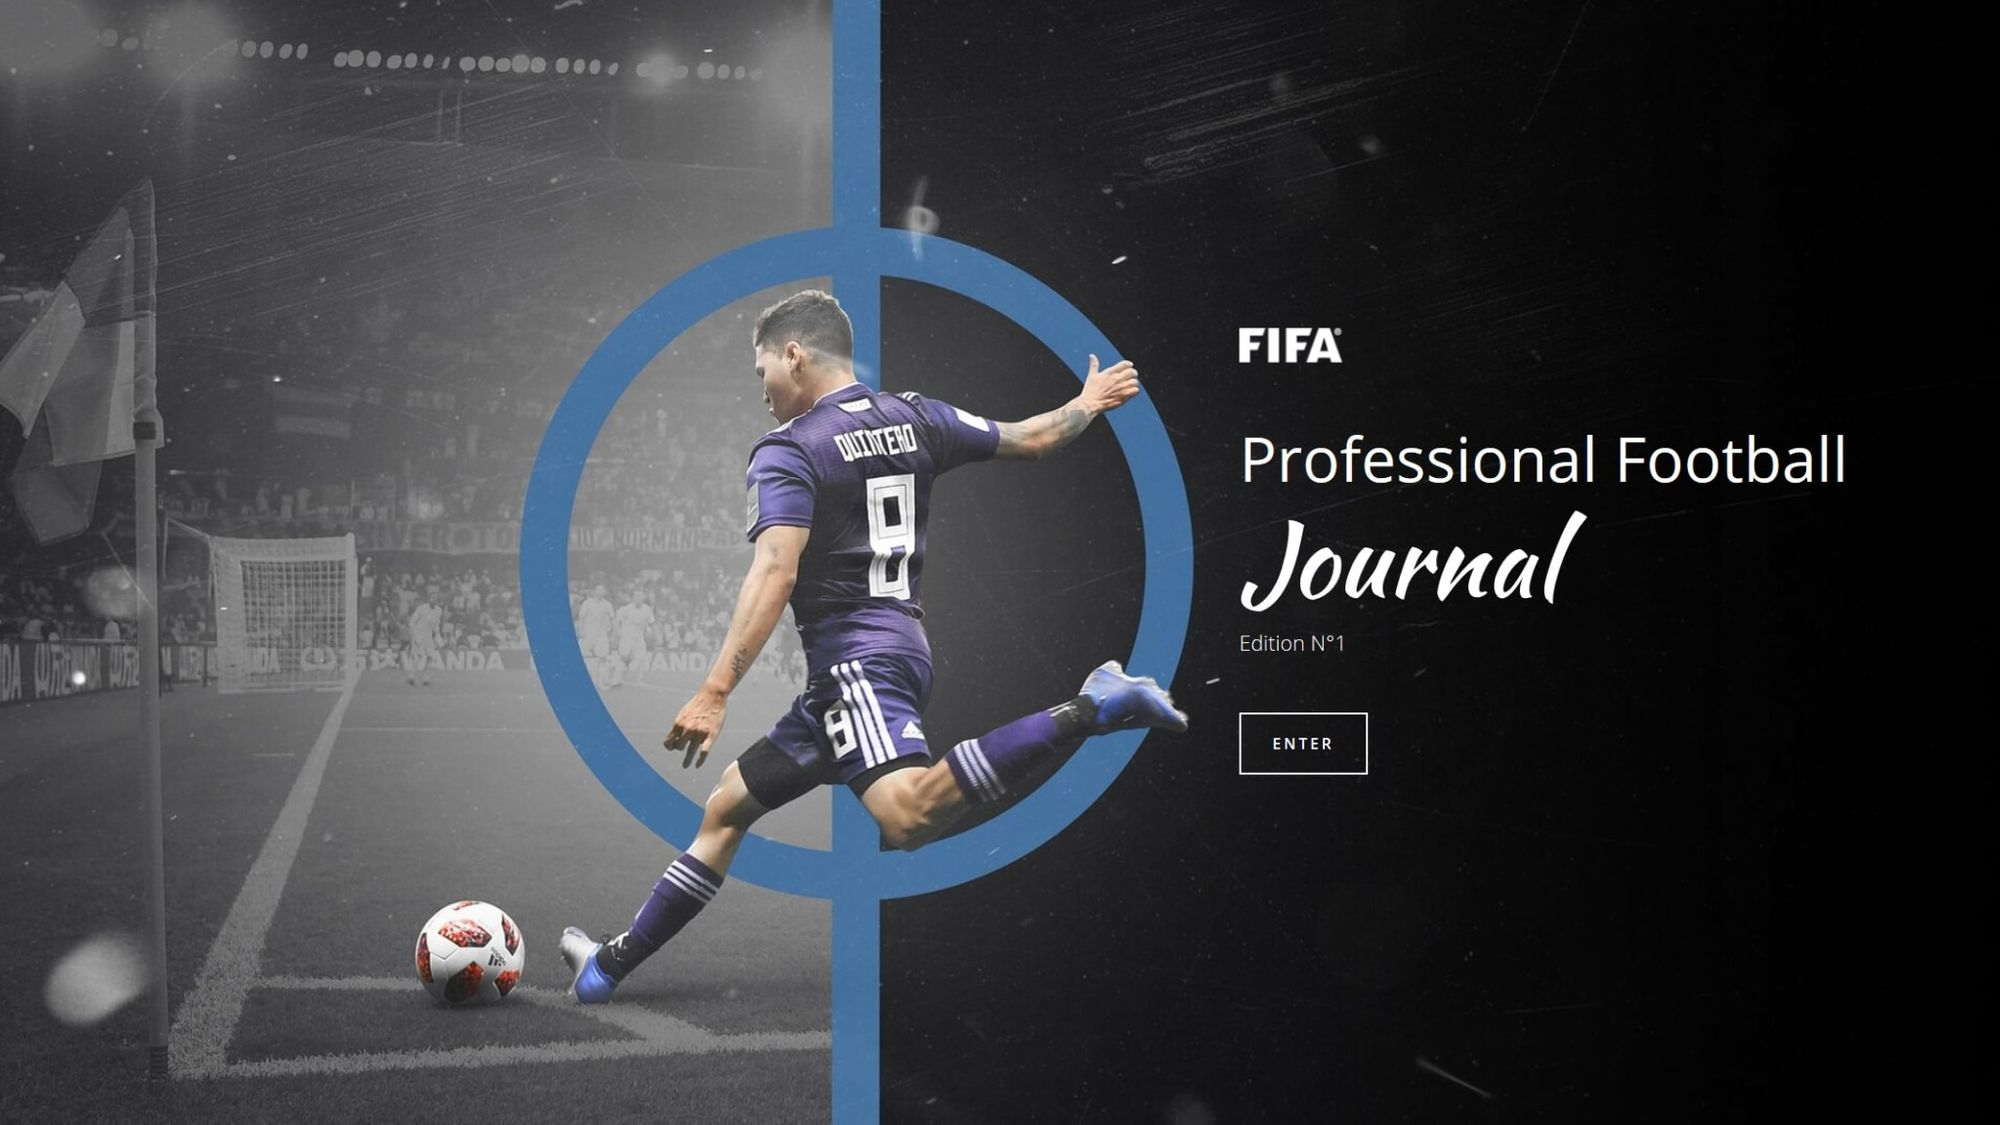 The DAIMANI Journal says Welcome to the FIFA Journal